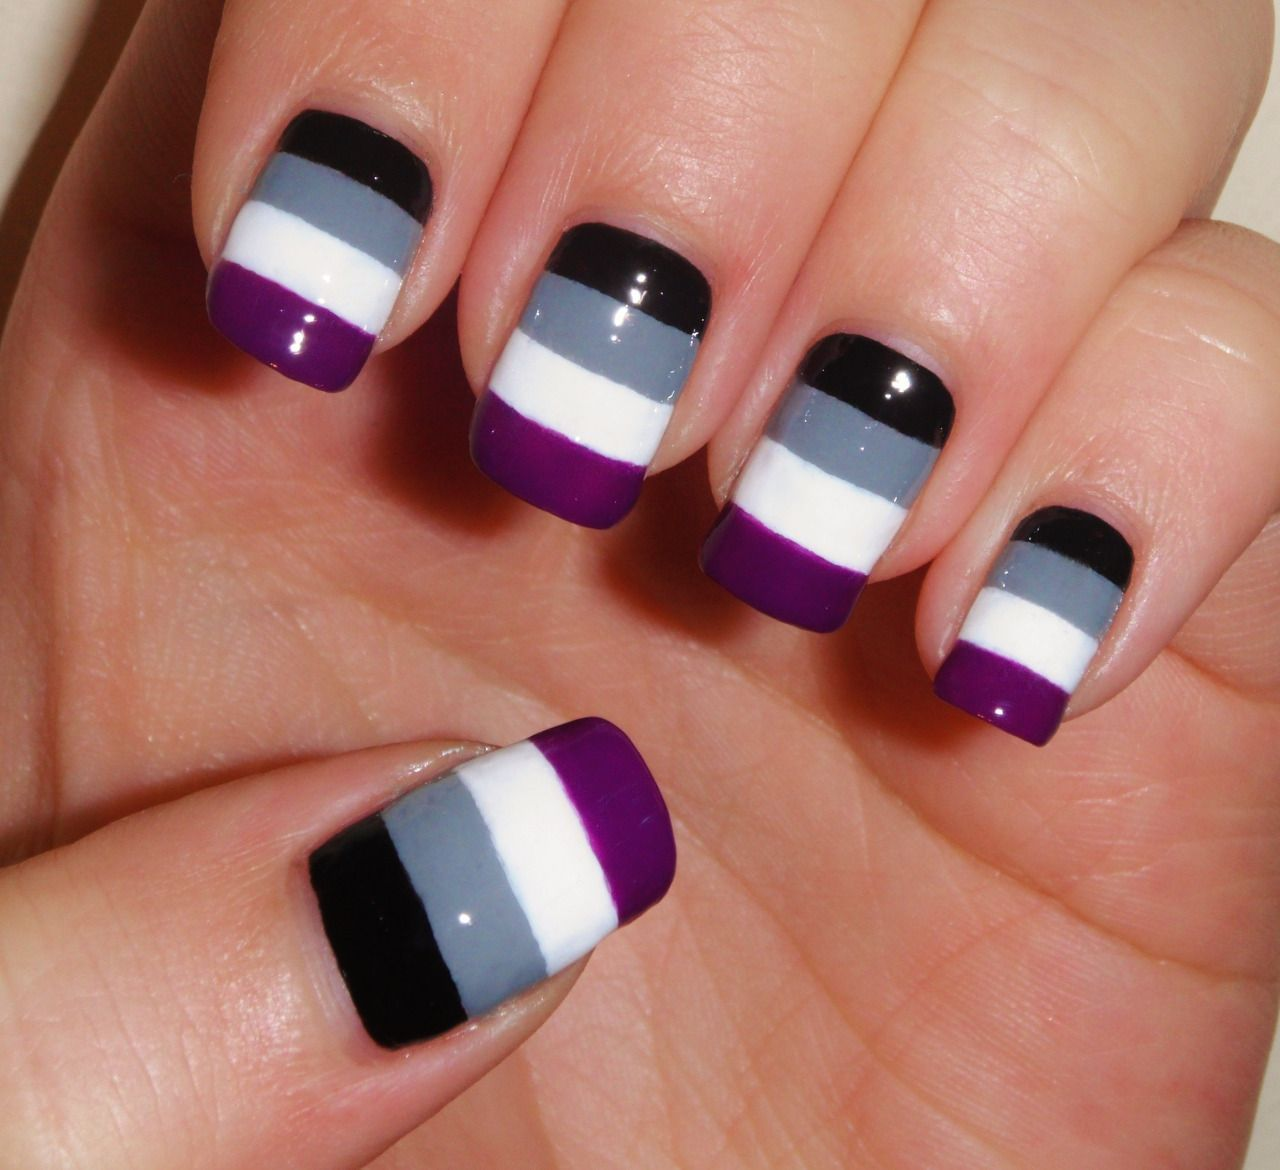 Pin By 𝕊𝕒𝕣𝕒𝕙 On Important Nail Art Ace Pride Flag Nails